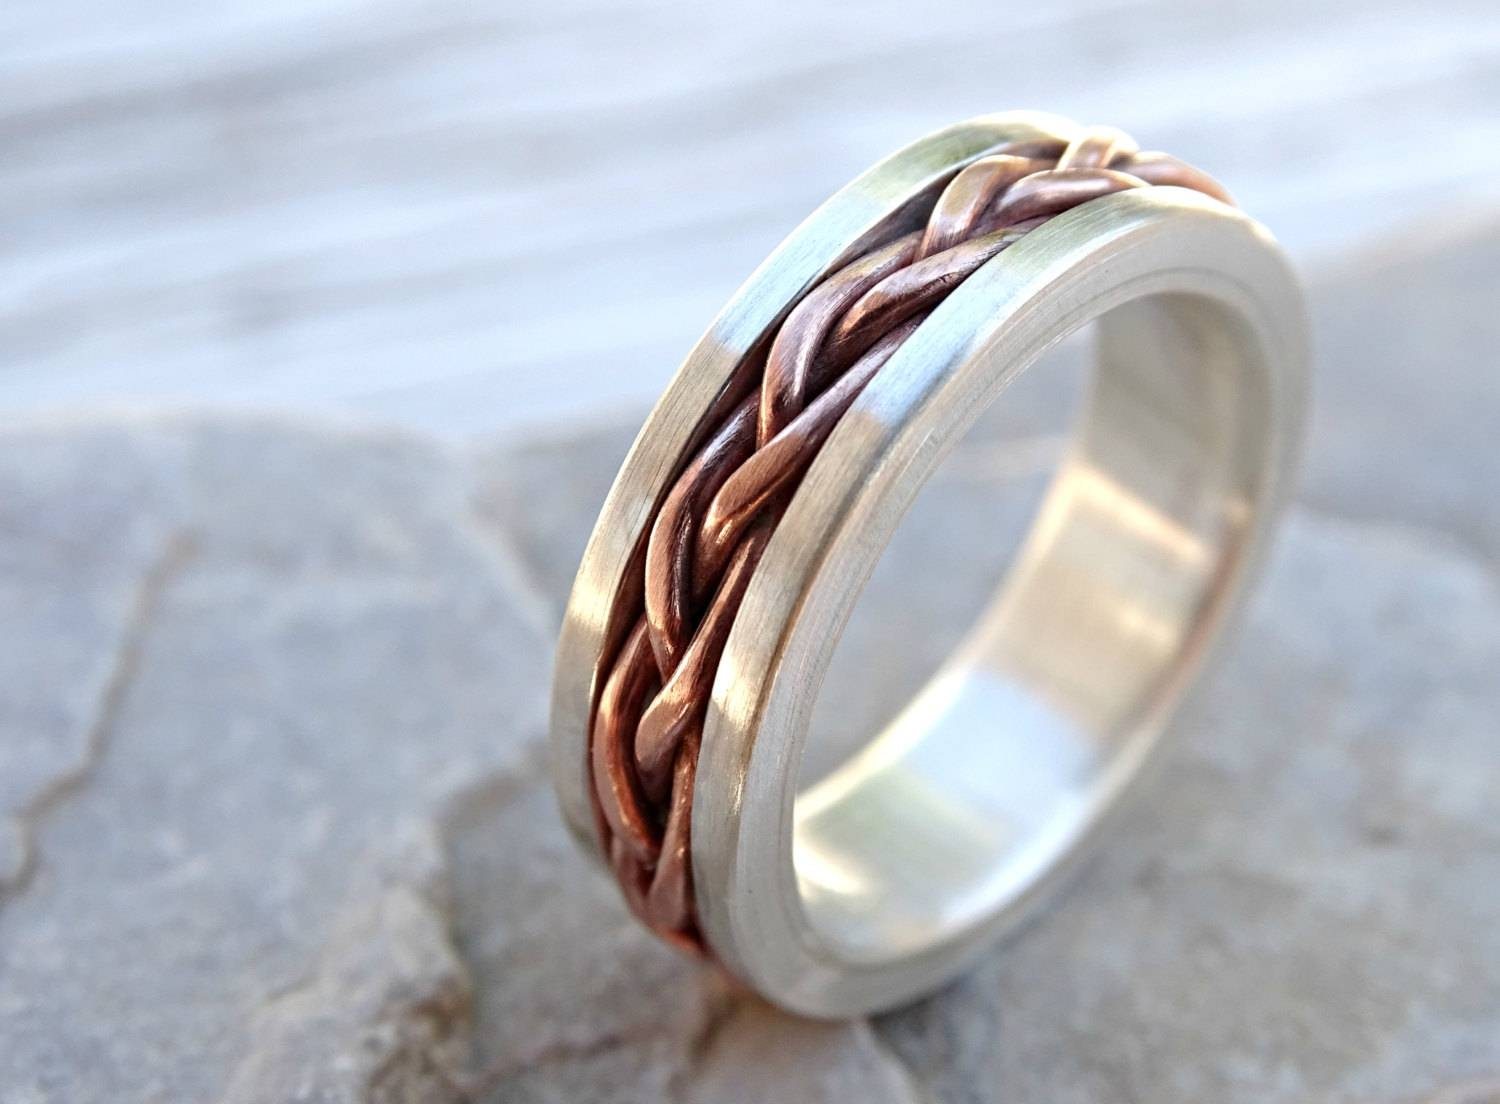 Braided Ring Silver Copper Unique Wedding Band Silver Mens Regarding Men's Braided Wedding Bands (View 9 of 15)